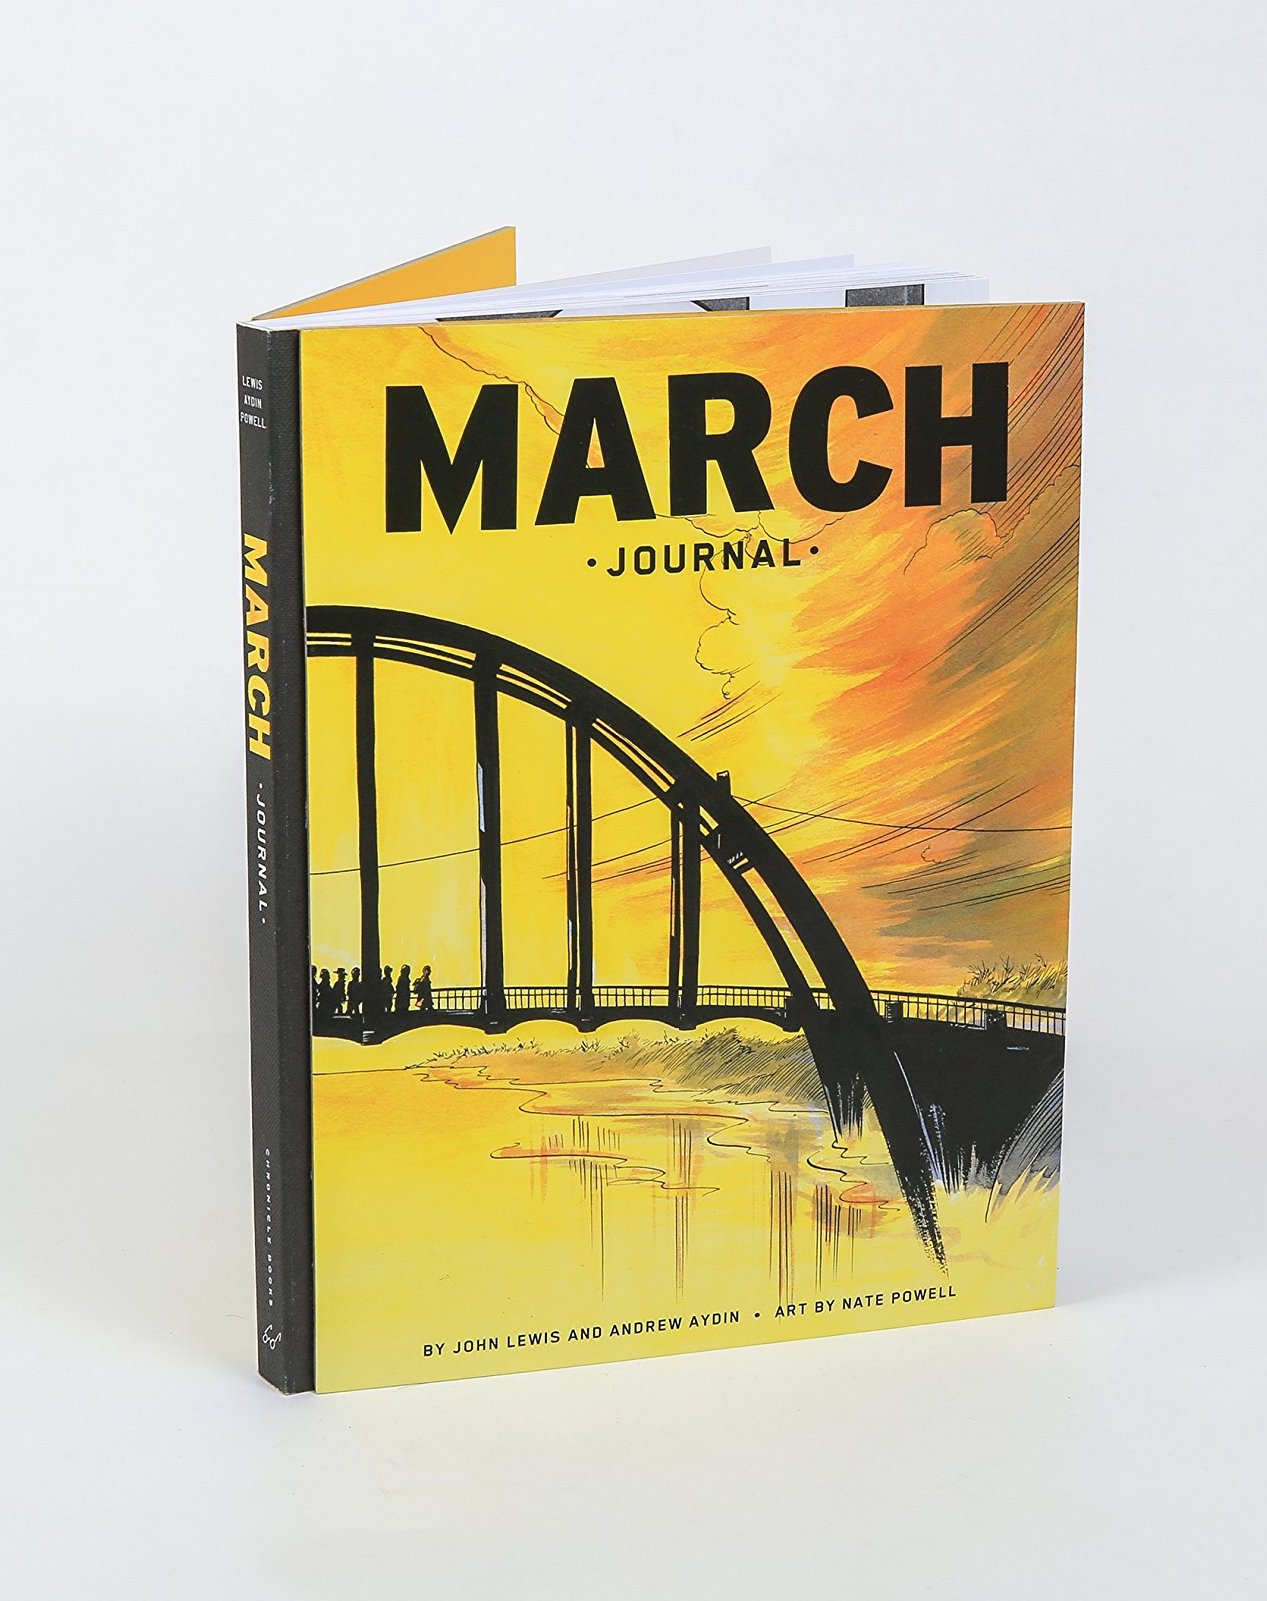 Cool gifts for tween boys (and girls): MARCH Journal inspired by Rep John Lewis's graphic novel trilogy